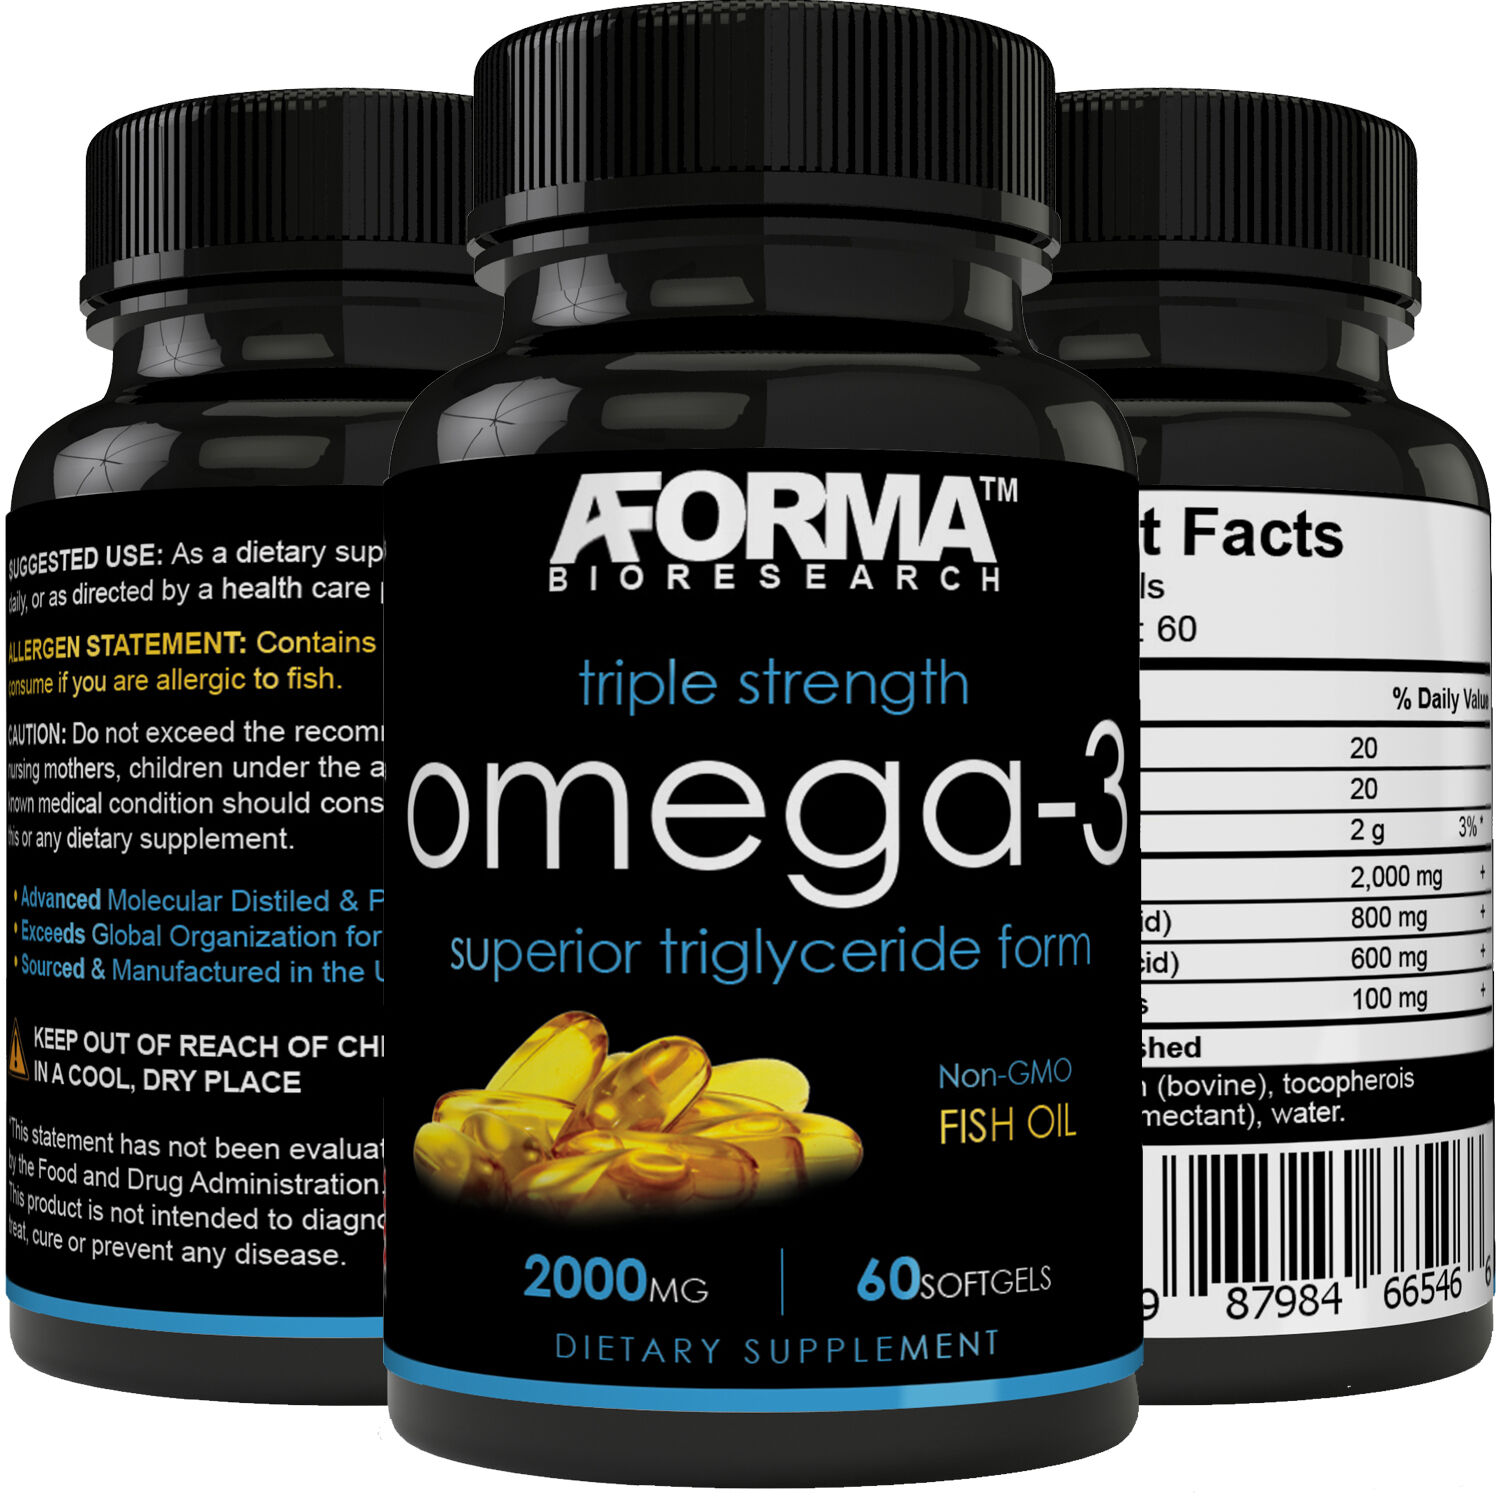 Ultra Fish Oil Omega-3 2000mg Supplement /w 800 EPA + 600 DH